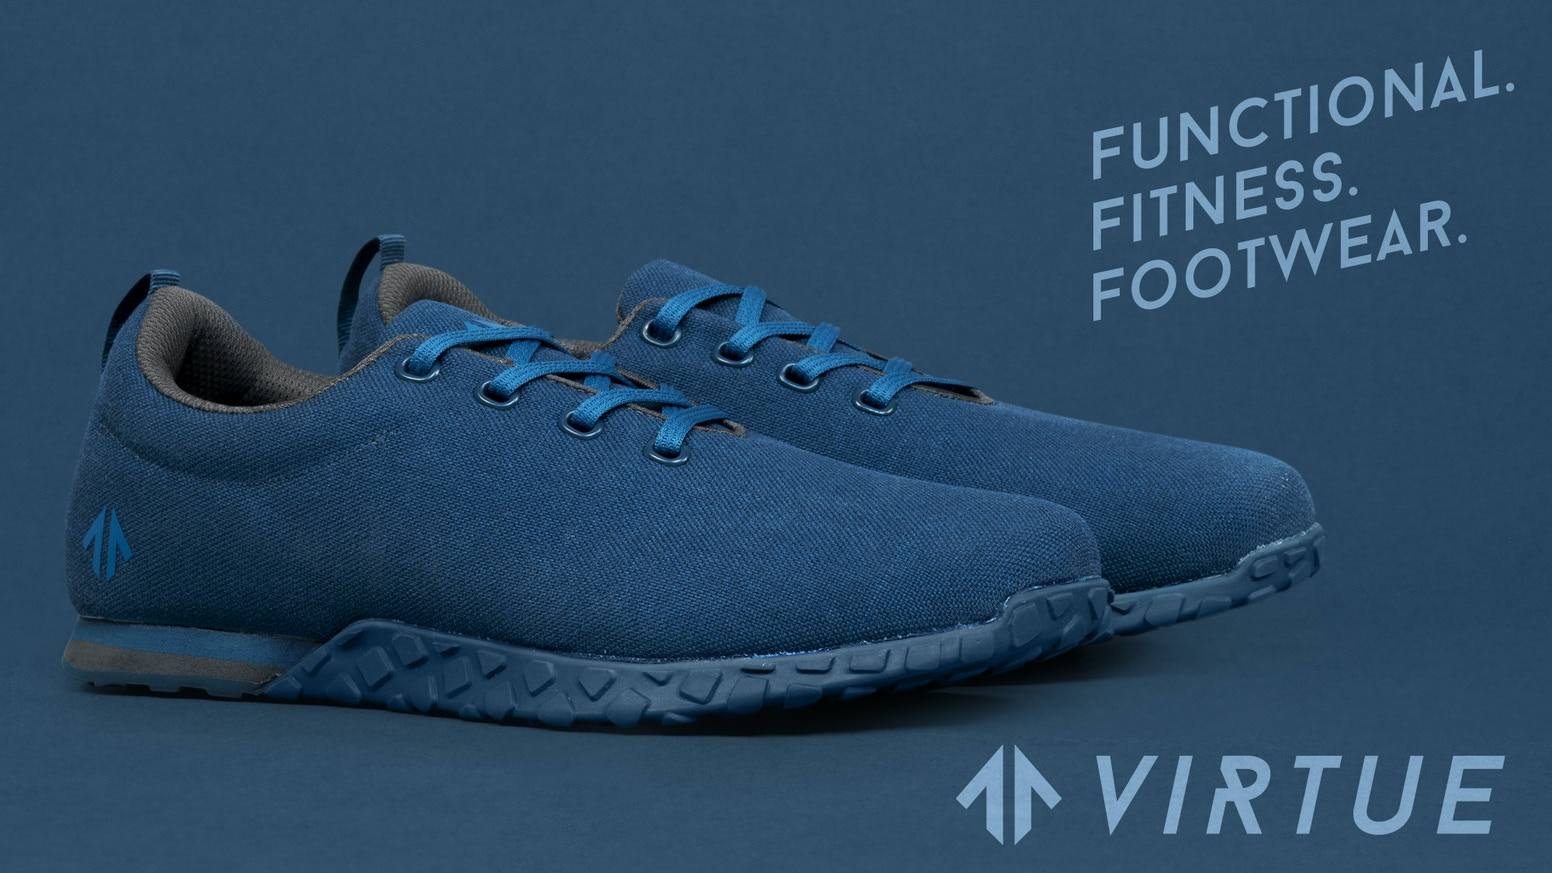 Functional fitness footwear designed with everything that's necessary...and nothing that isn't. DO MORE WITH LESS.